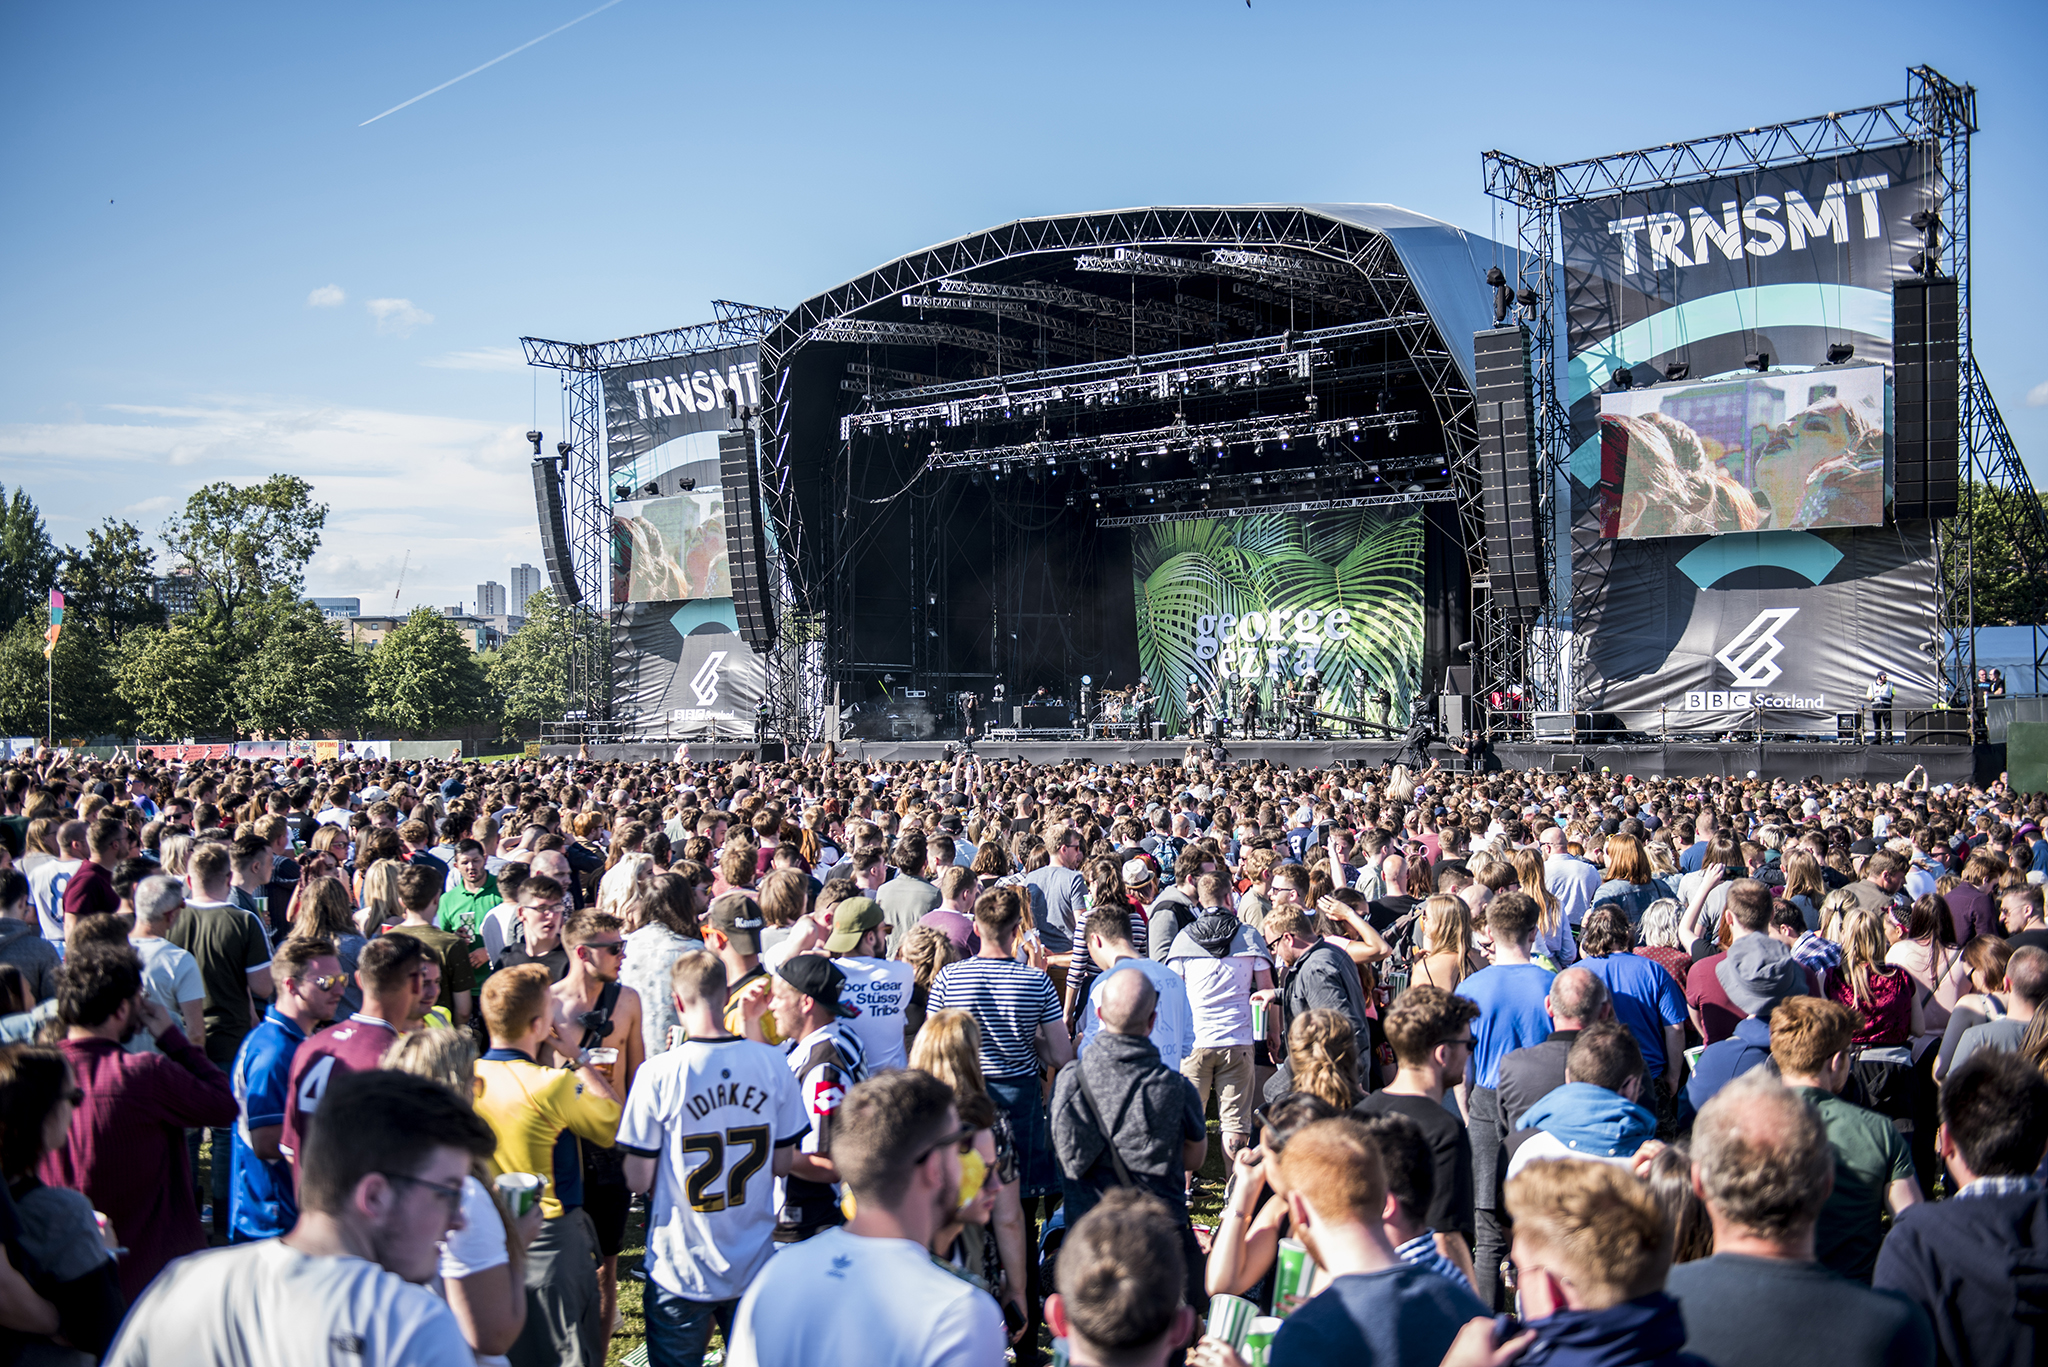 TRNSMT FESTIVAL 2017 - @ Glasgow Green, Scotland